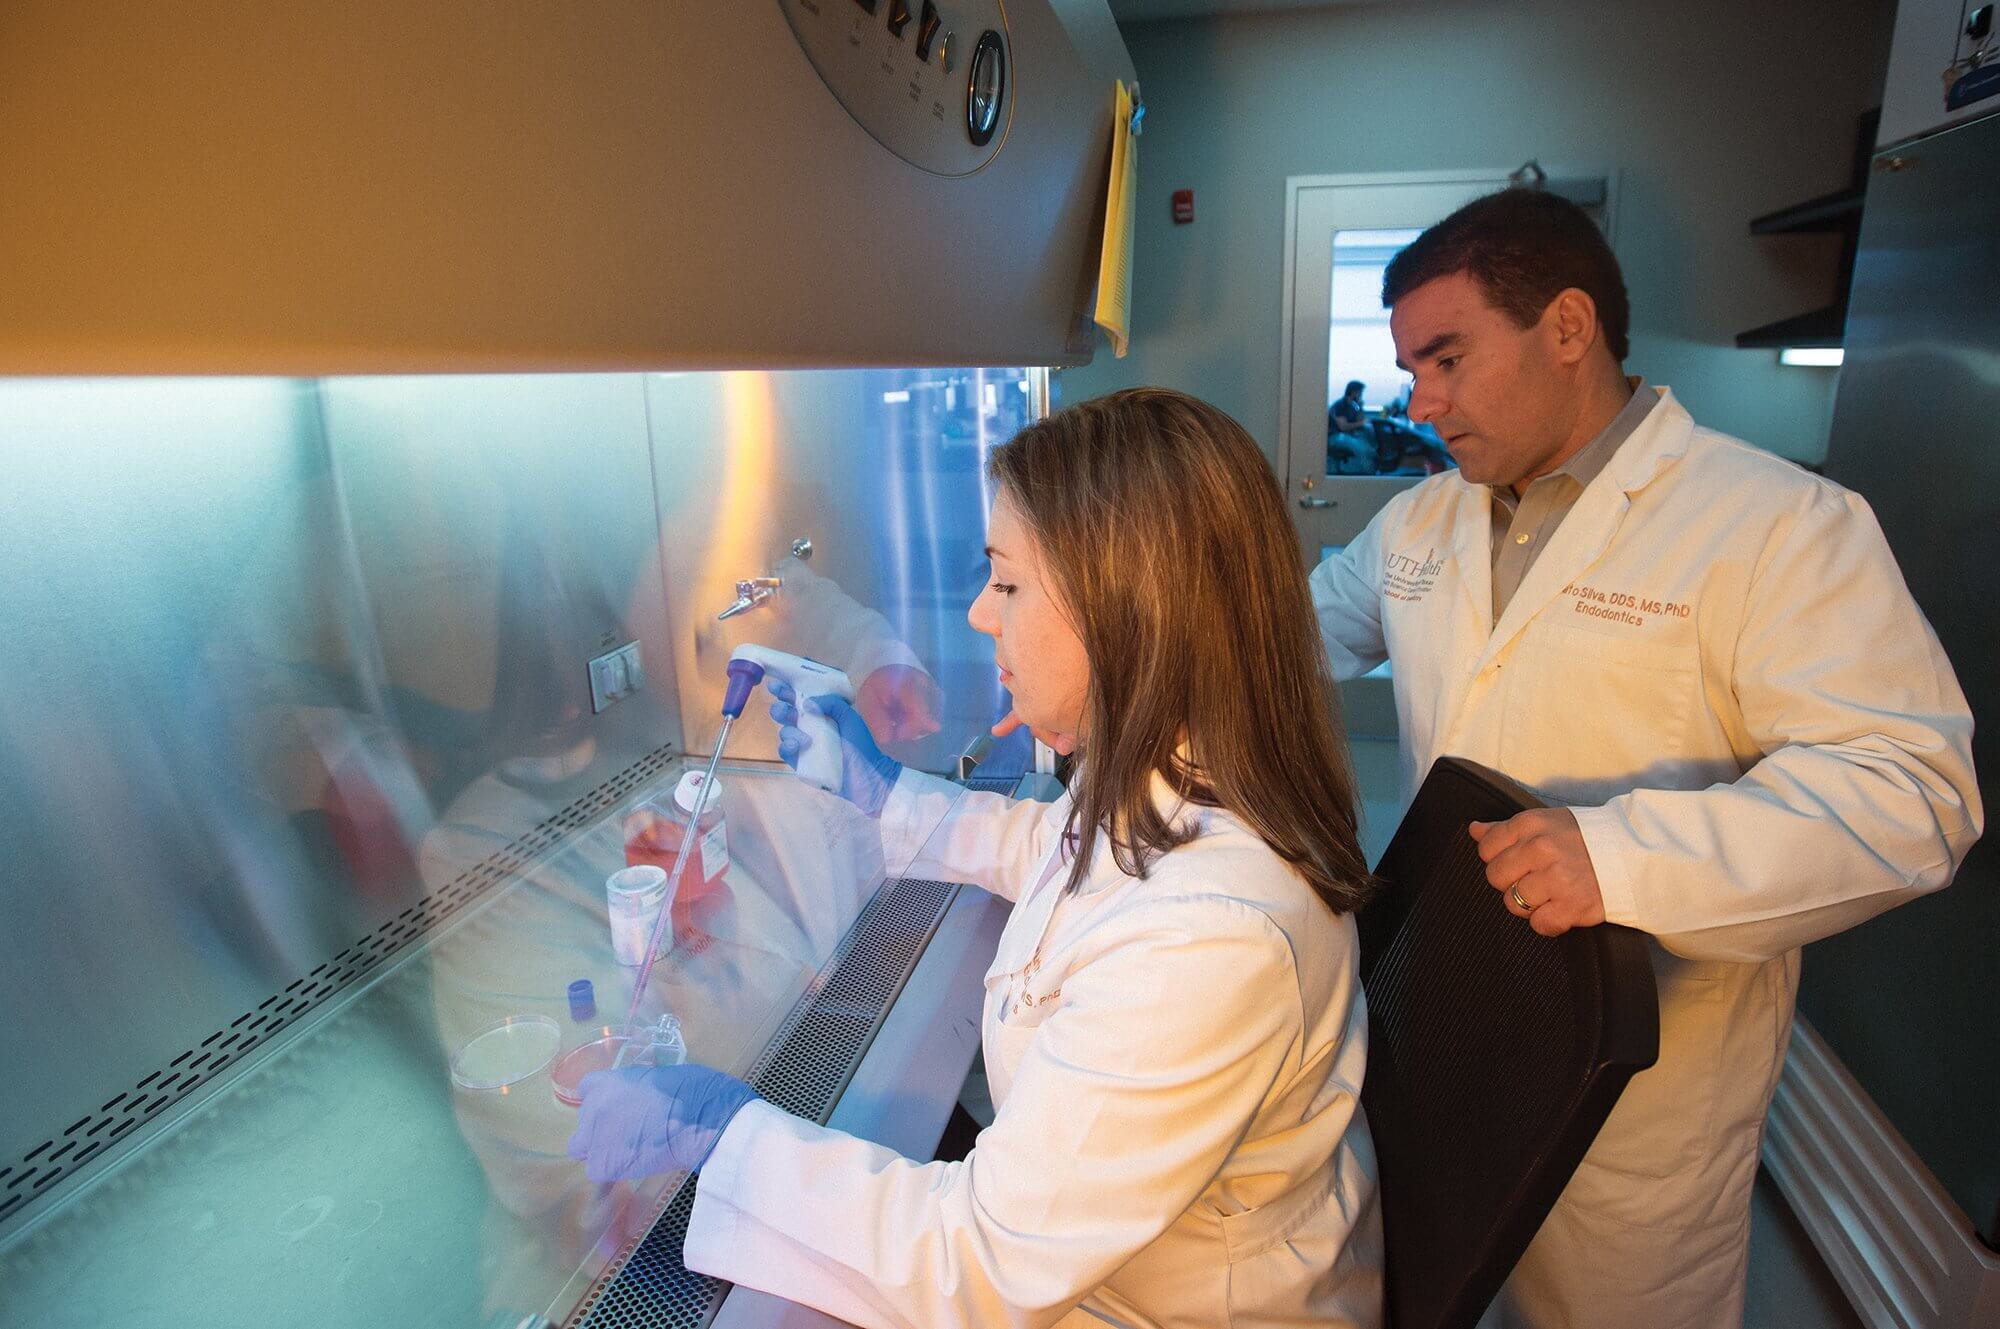 Ariadne Letra, D.D.S., Ph.D., director of research in the department of endodontics at UTHealth's School of Dentistry, and Renato Silva, D.D.S., Ph.D., associate professor and chair of the department of endodontics at UTHealth, demonstrate how their team analyzes samples.